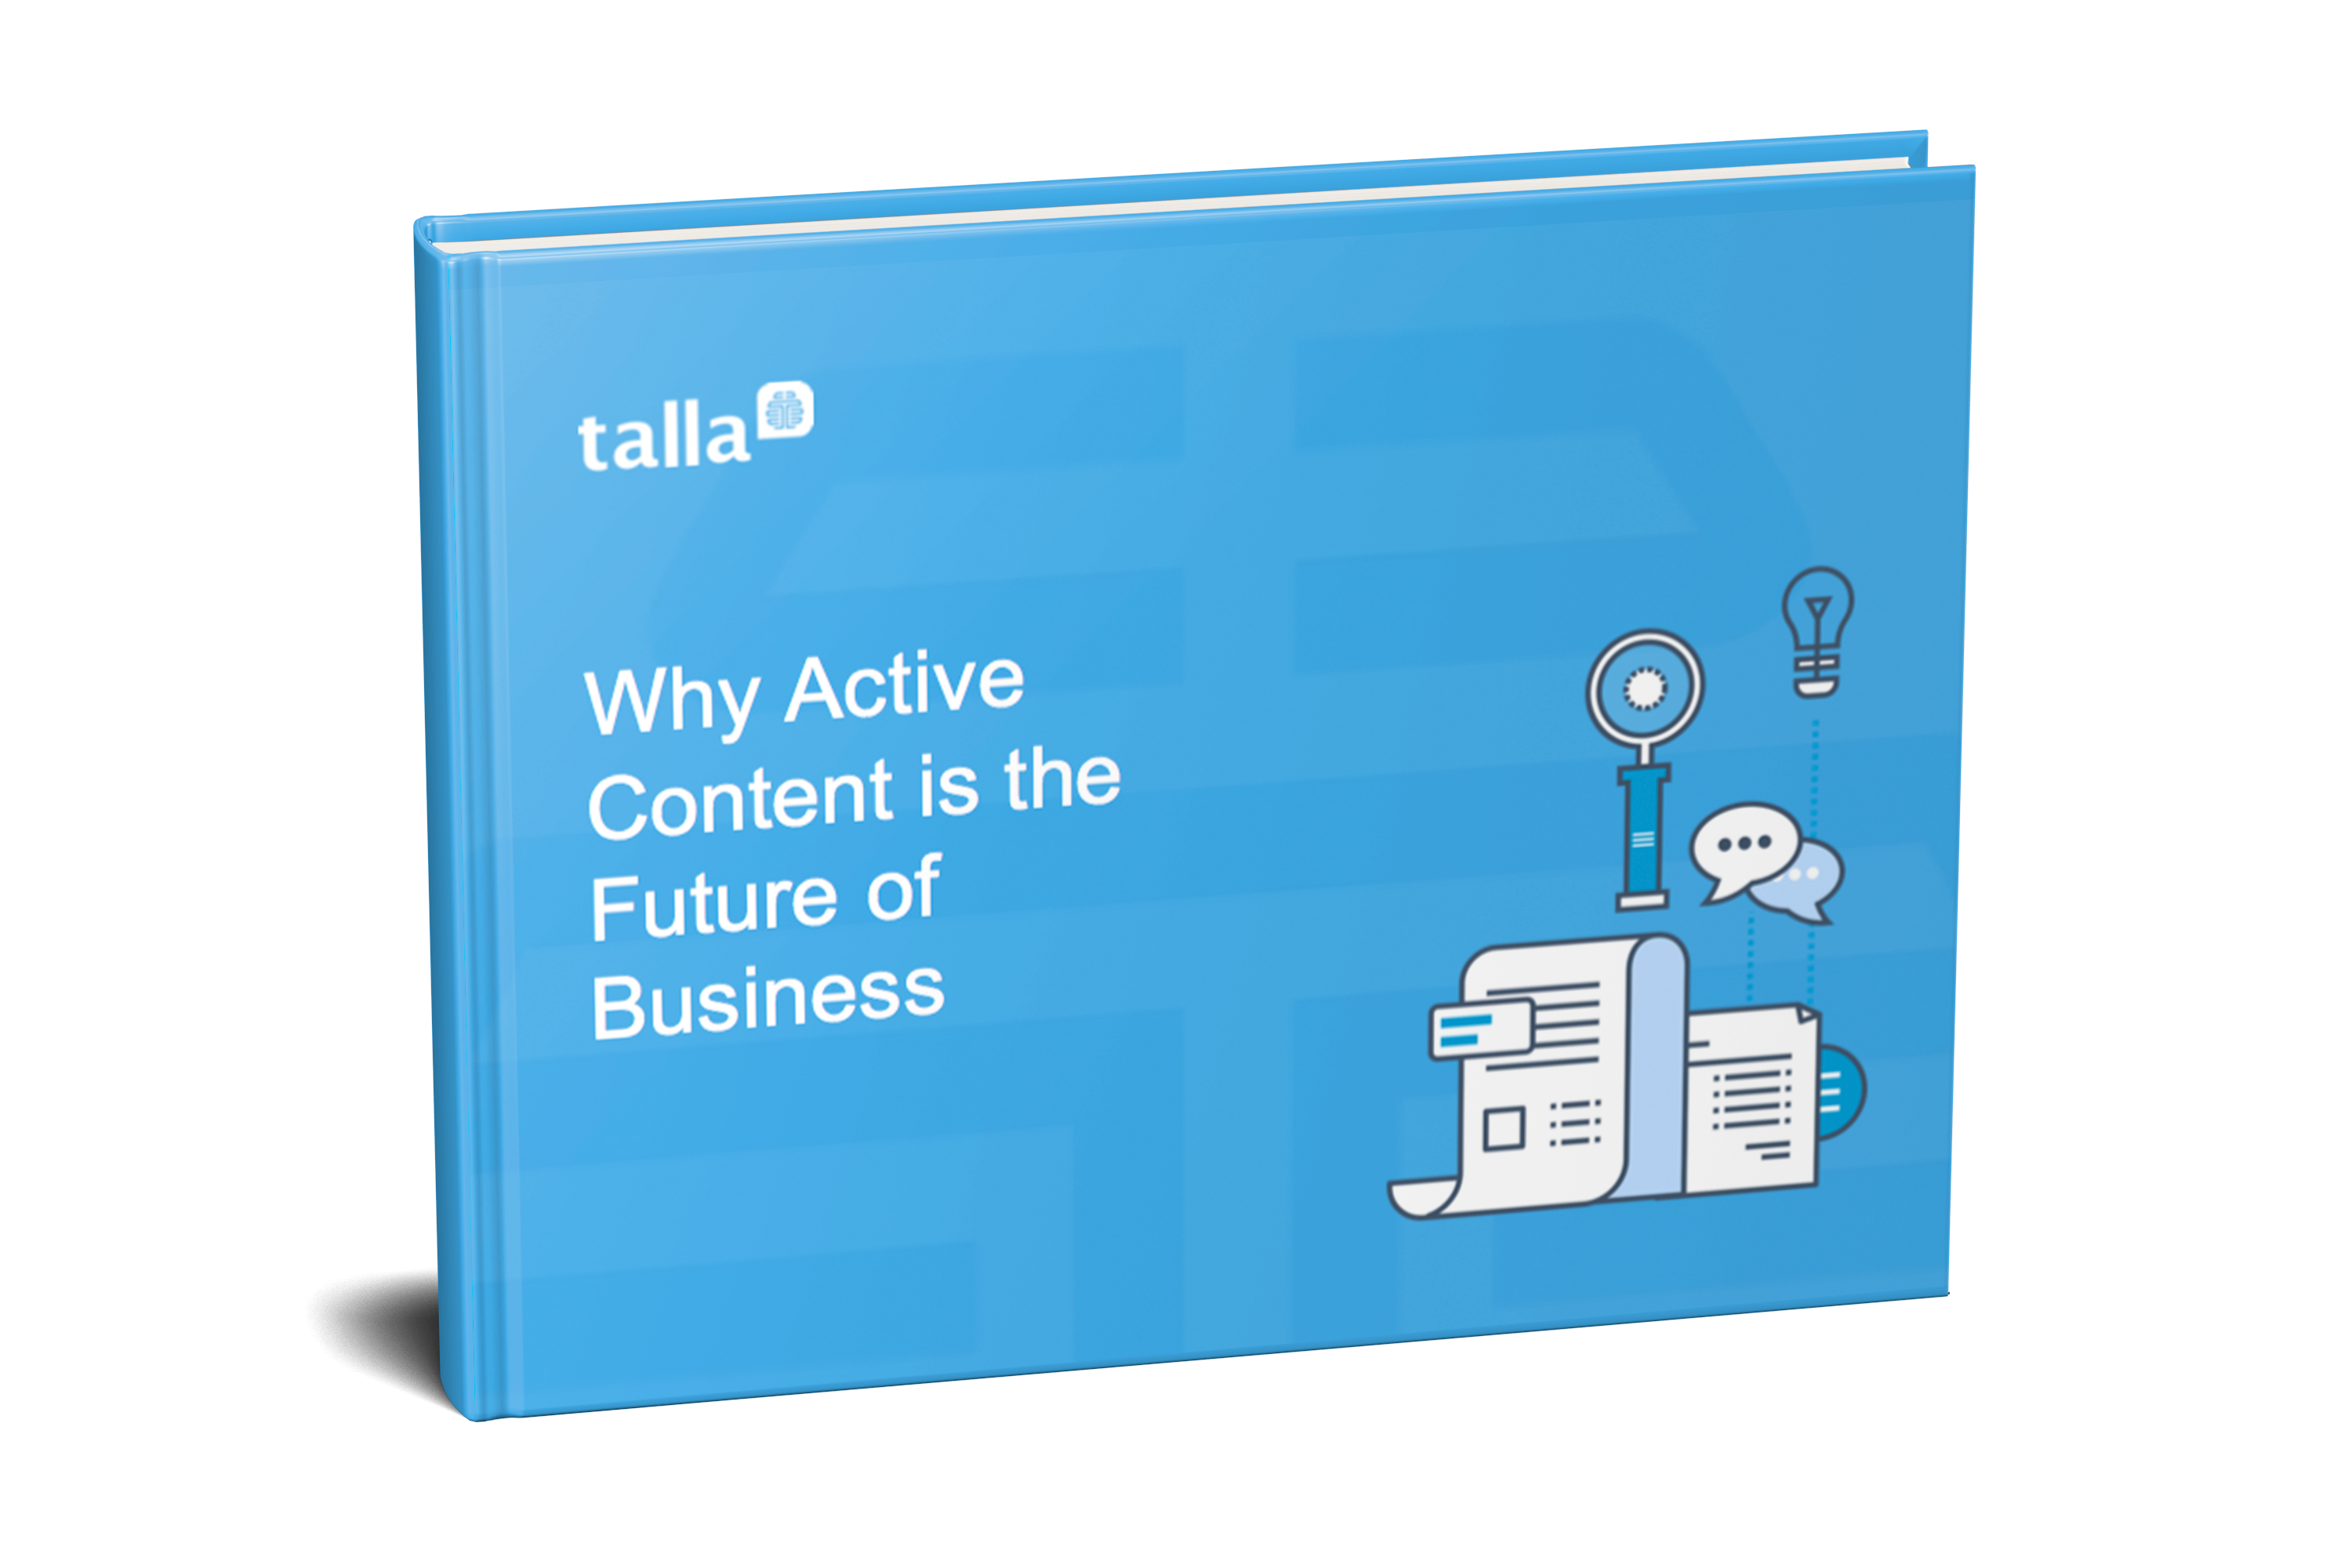 Why-Active-Content-Future-of-Business-Talla-Ebook-cover